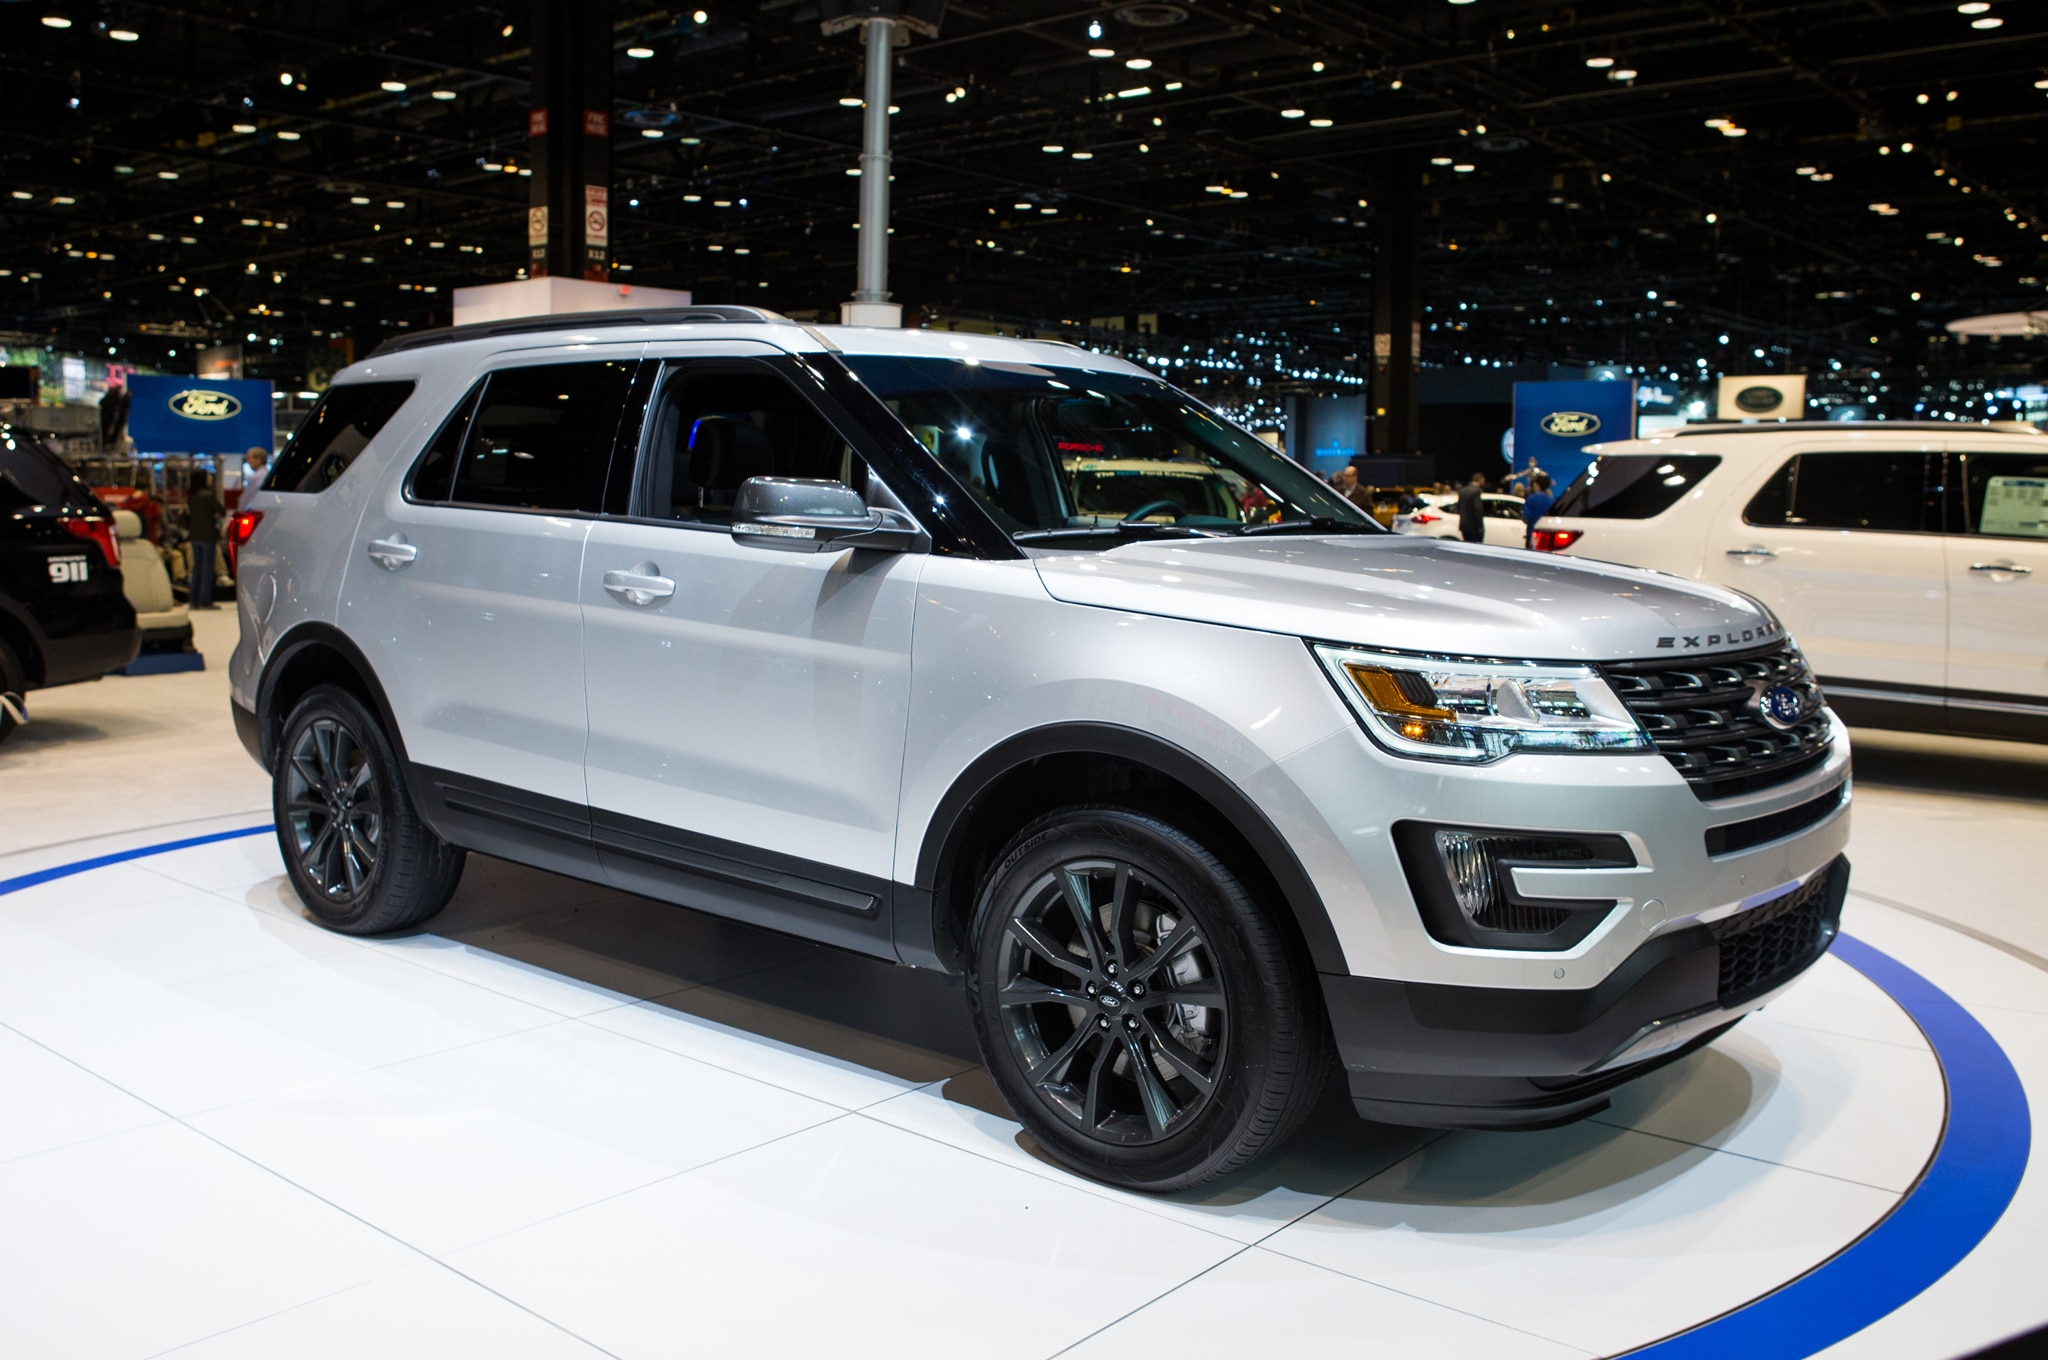 Offered For The Explorer Xlt The Appearance Package